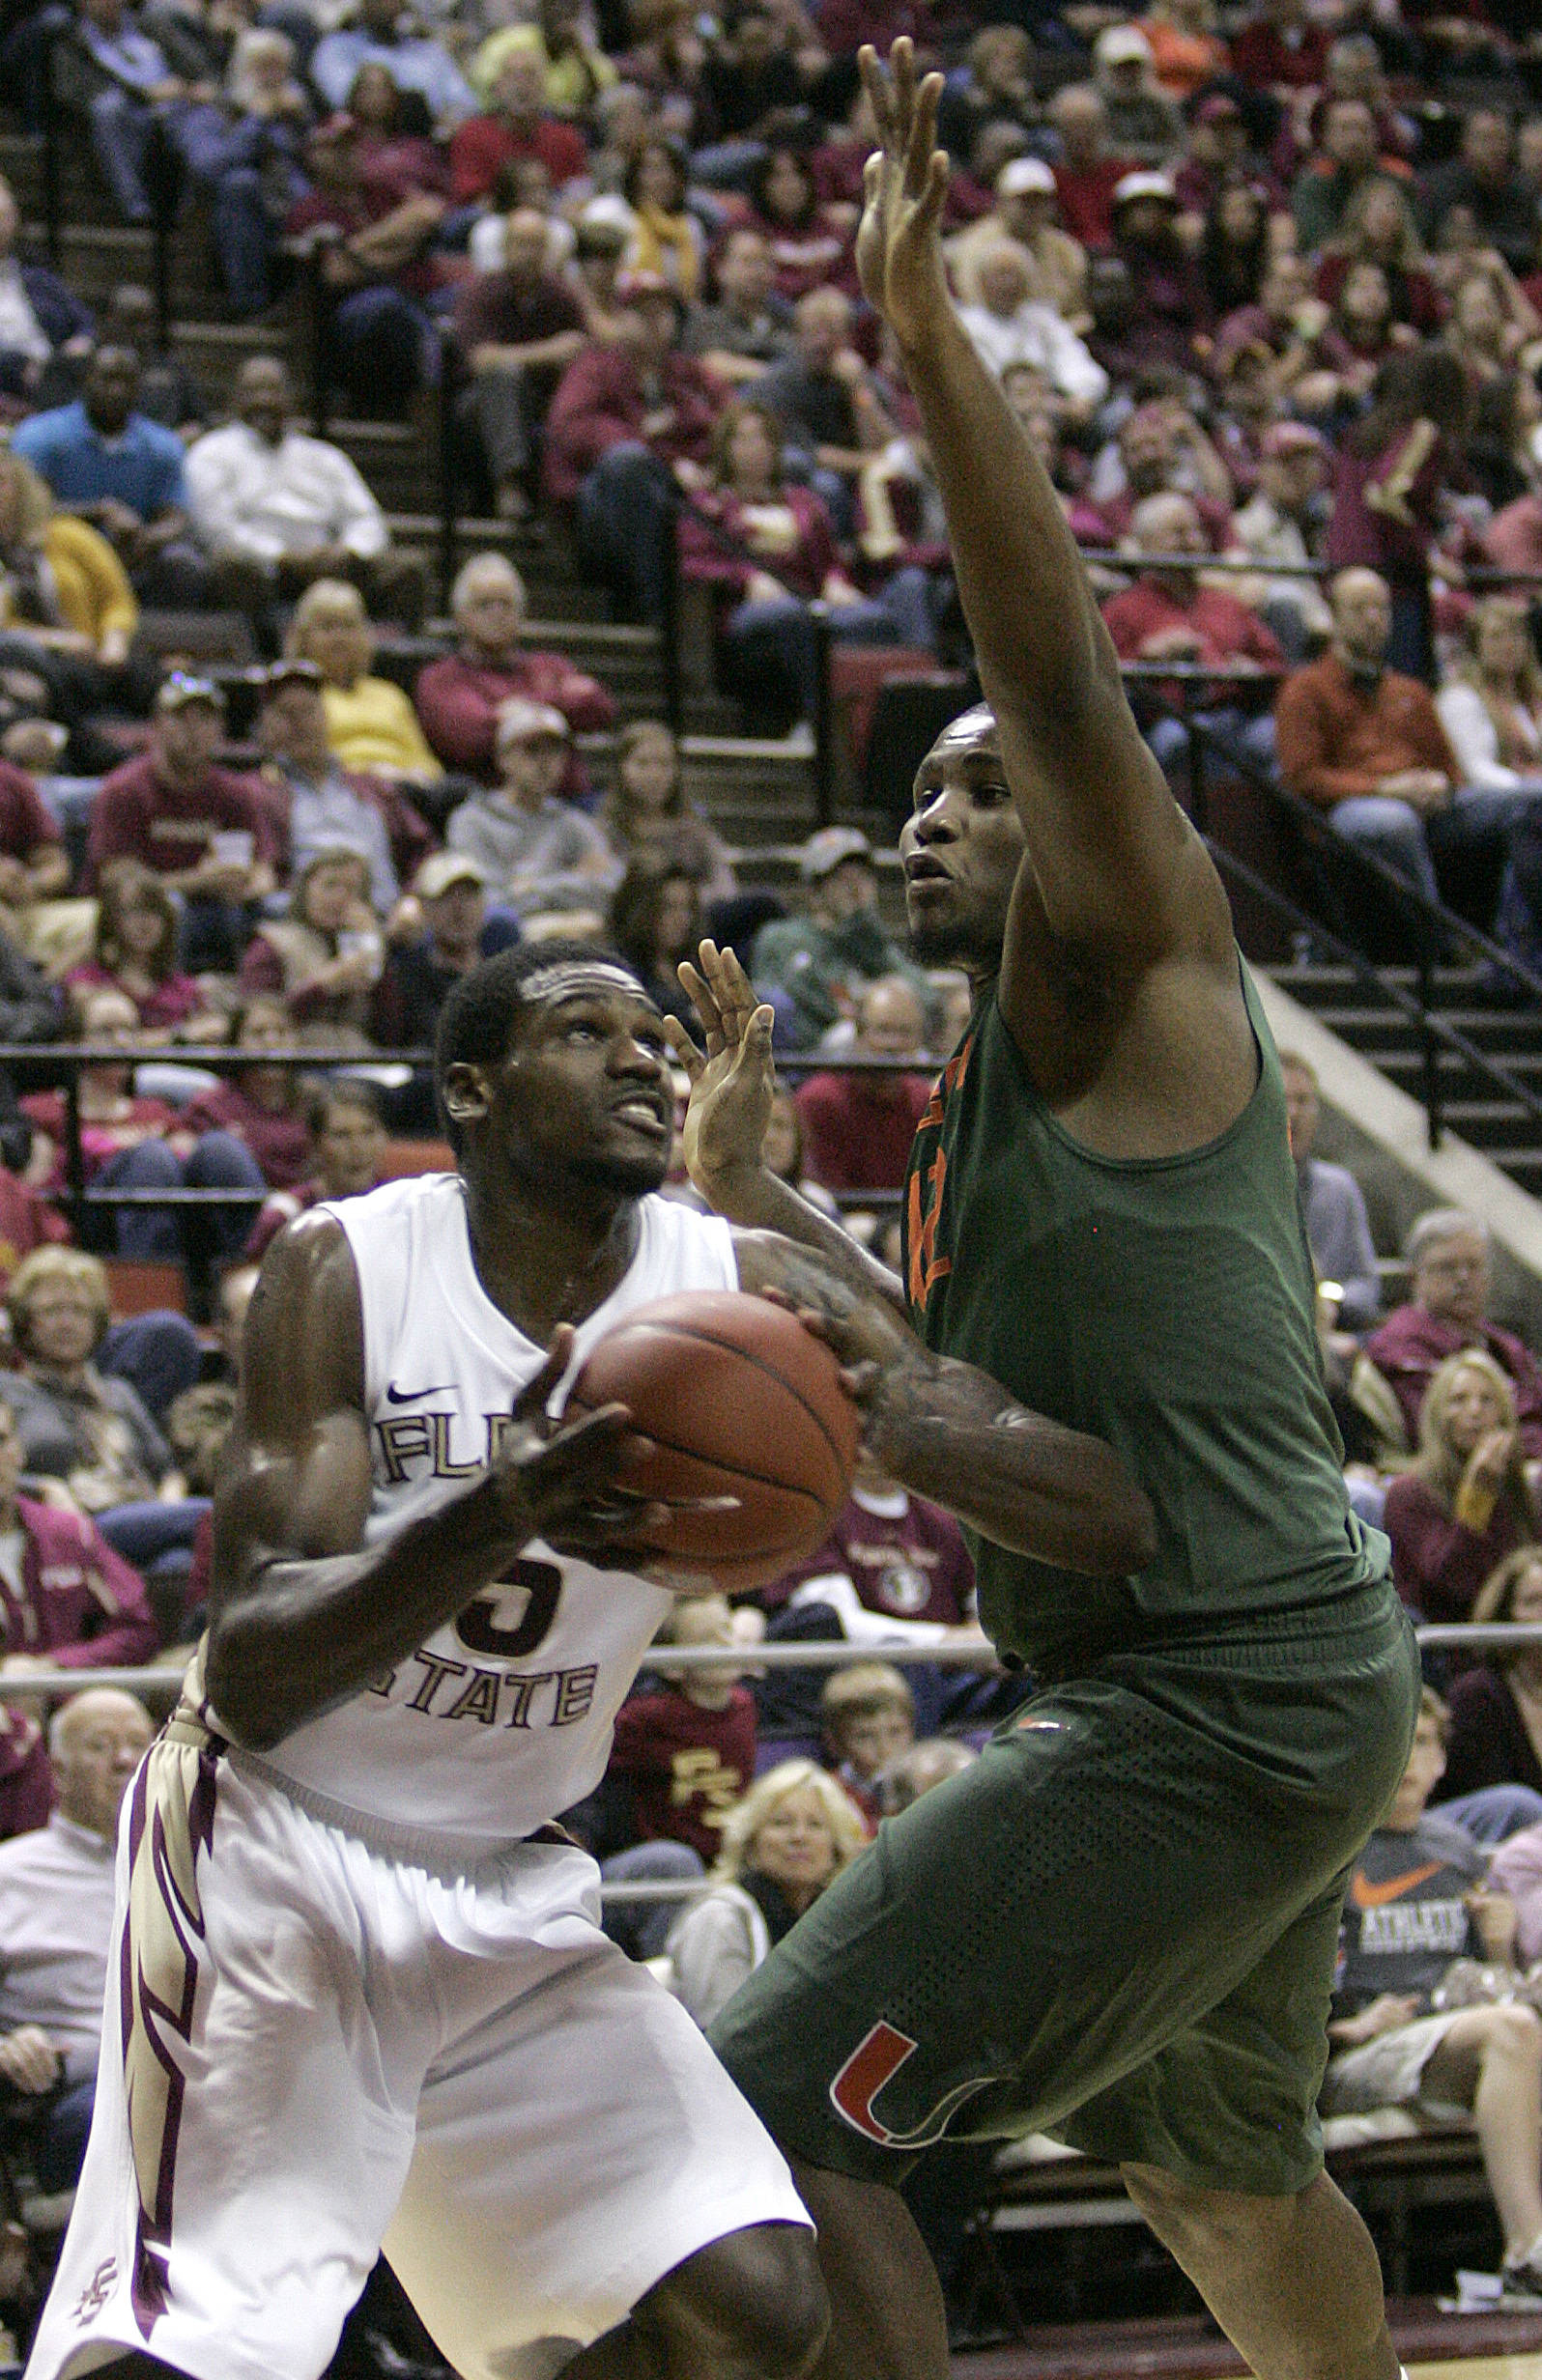 Florida State's Bernard James gets around the defense of Miami's Reggie Johnson to score in the second half of an NCAA college basketball game on Saturday, Feb. 11, 2012 in Tallahassee, Fla.(AP Photo/Steve Cannon)